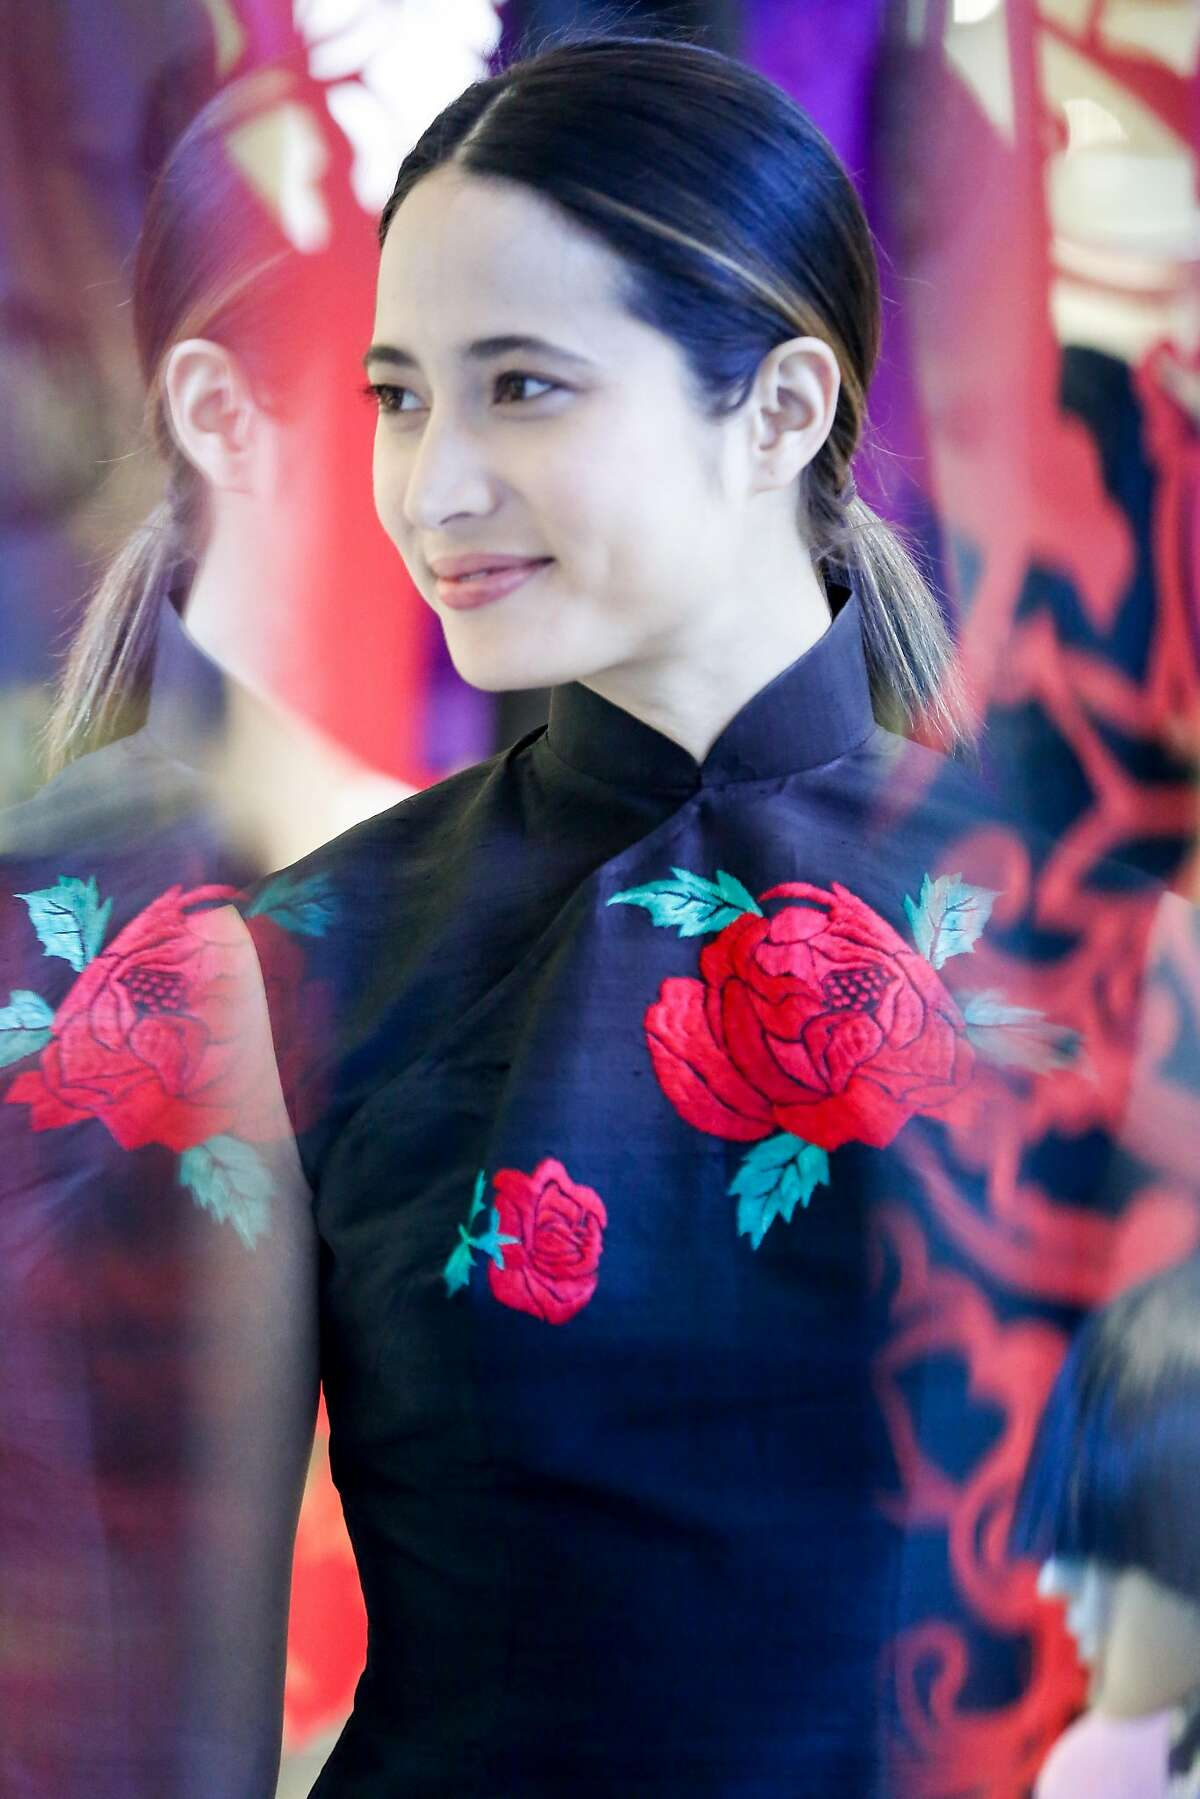 Cecilia Chiang's fashions that she designed herself in honor of Lunar New Year at Saks Fifth Avenue on Friday, February 15, 2018 in San Francisco, California.